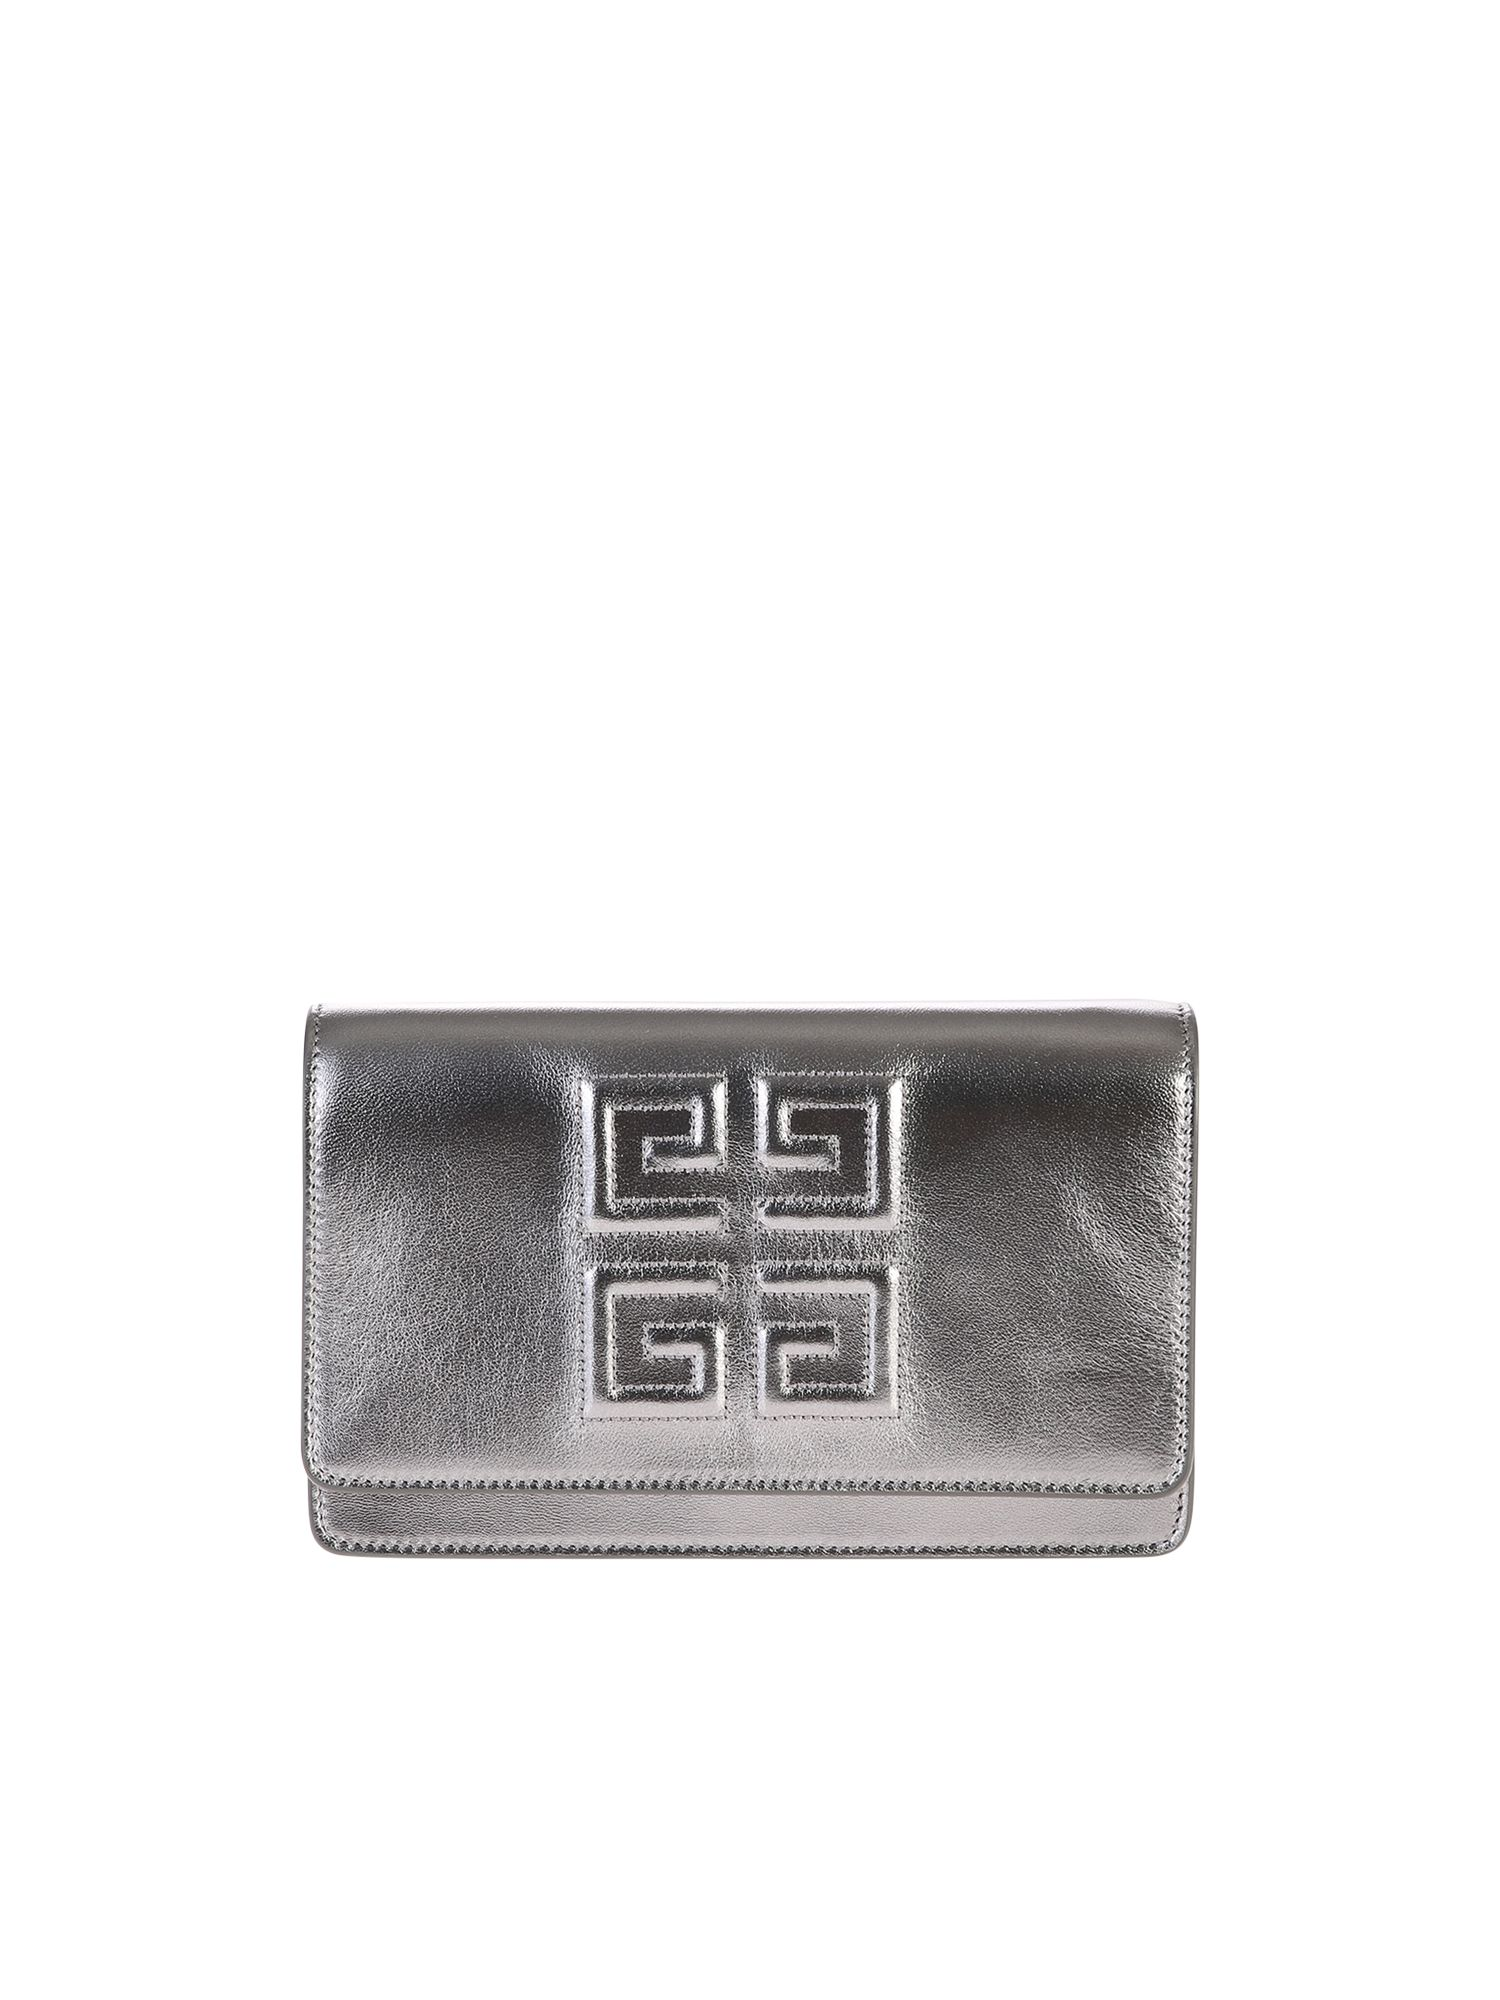 GIVENCHY | Givenchy Metallic Branded Bag | Clouty